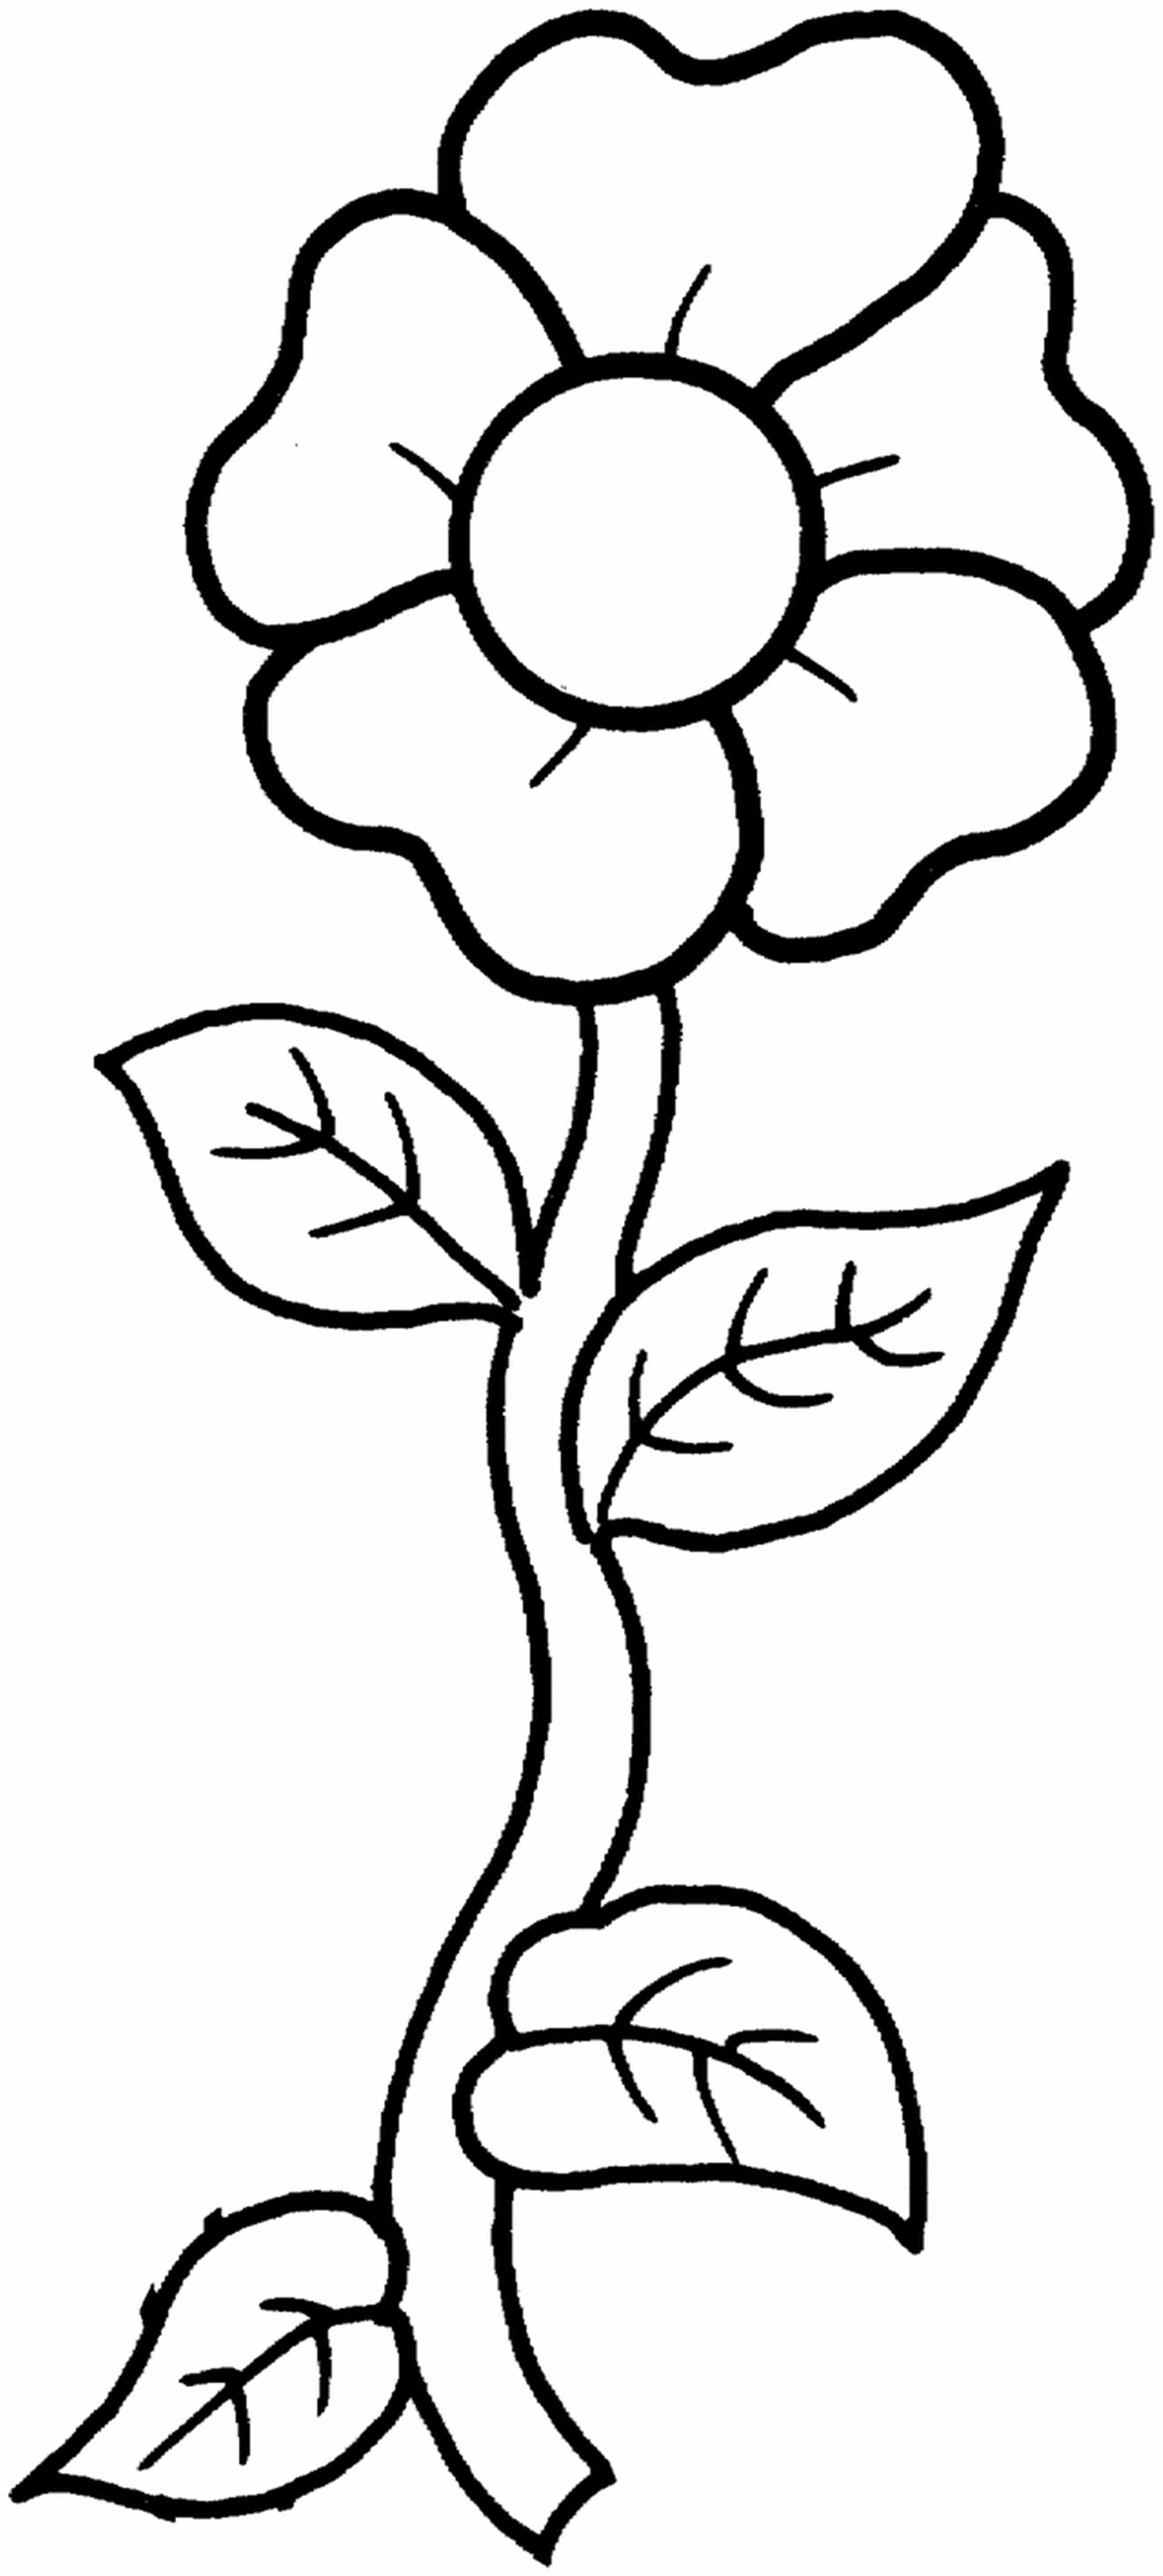 flower printable coloring pages free printable flowers pdf coloring pages 10 flower coloring printable pages